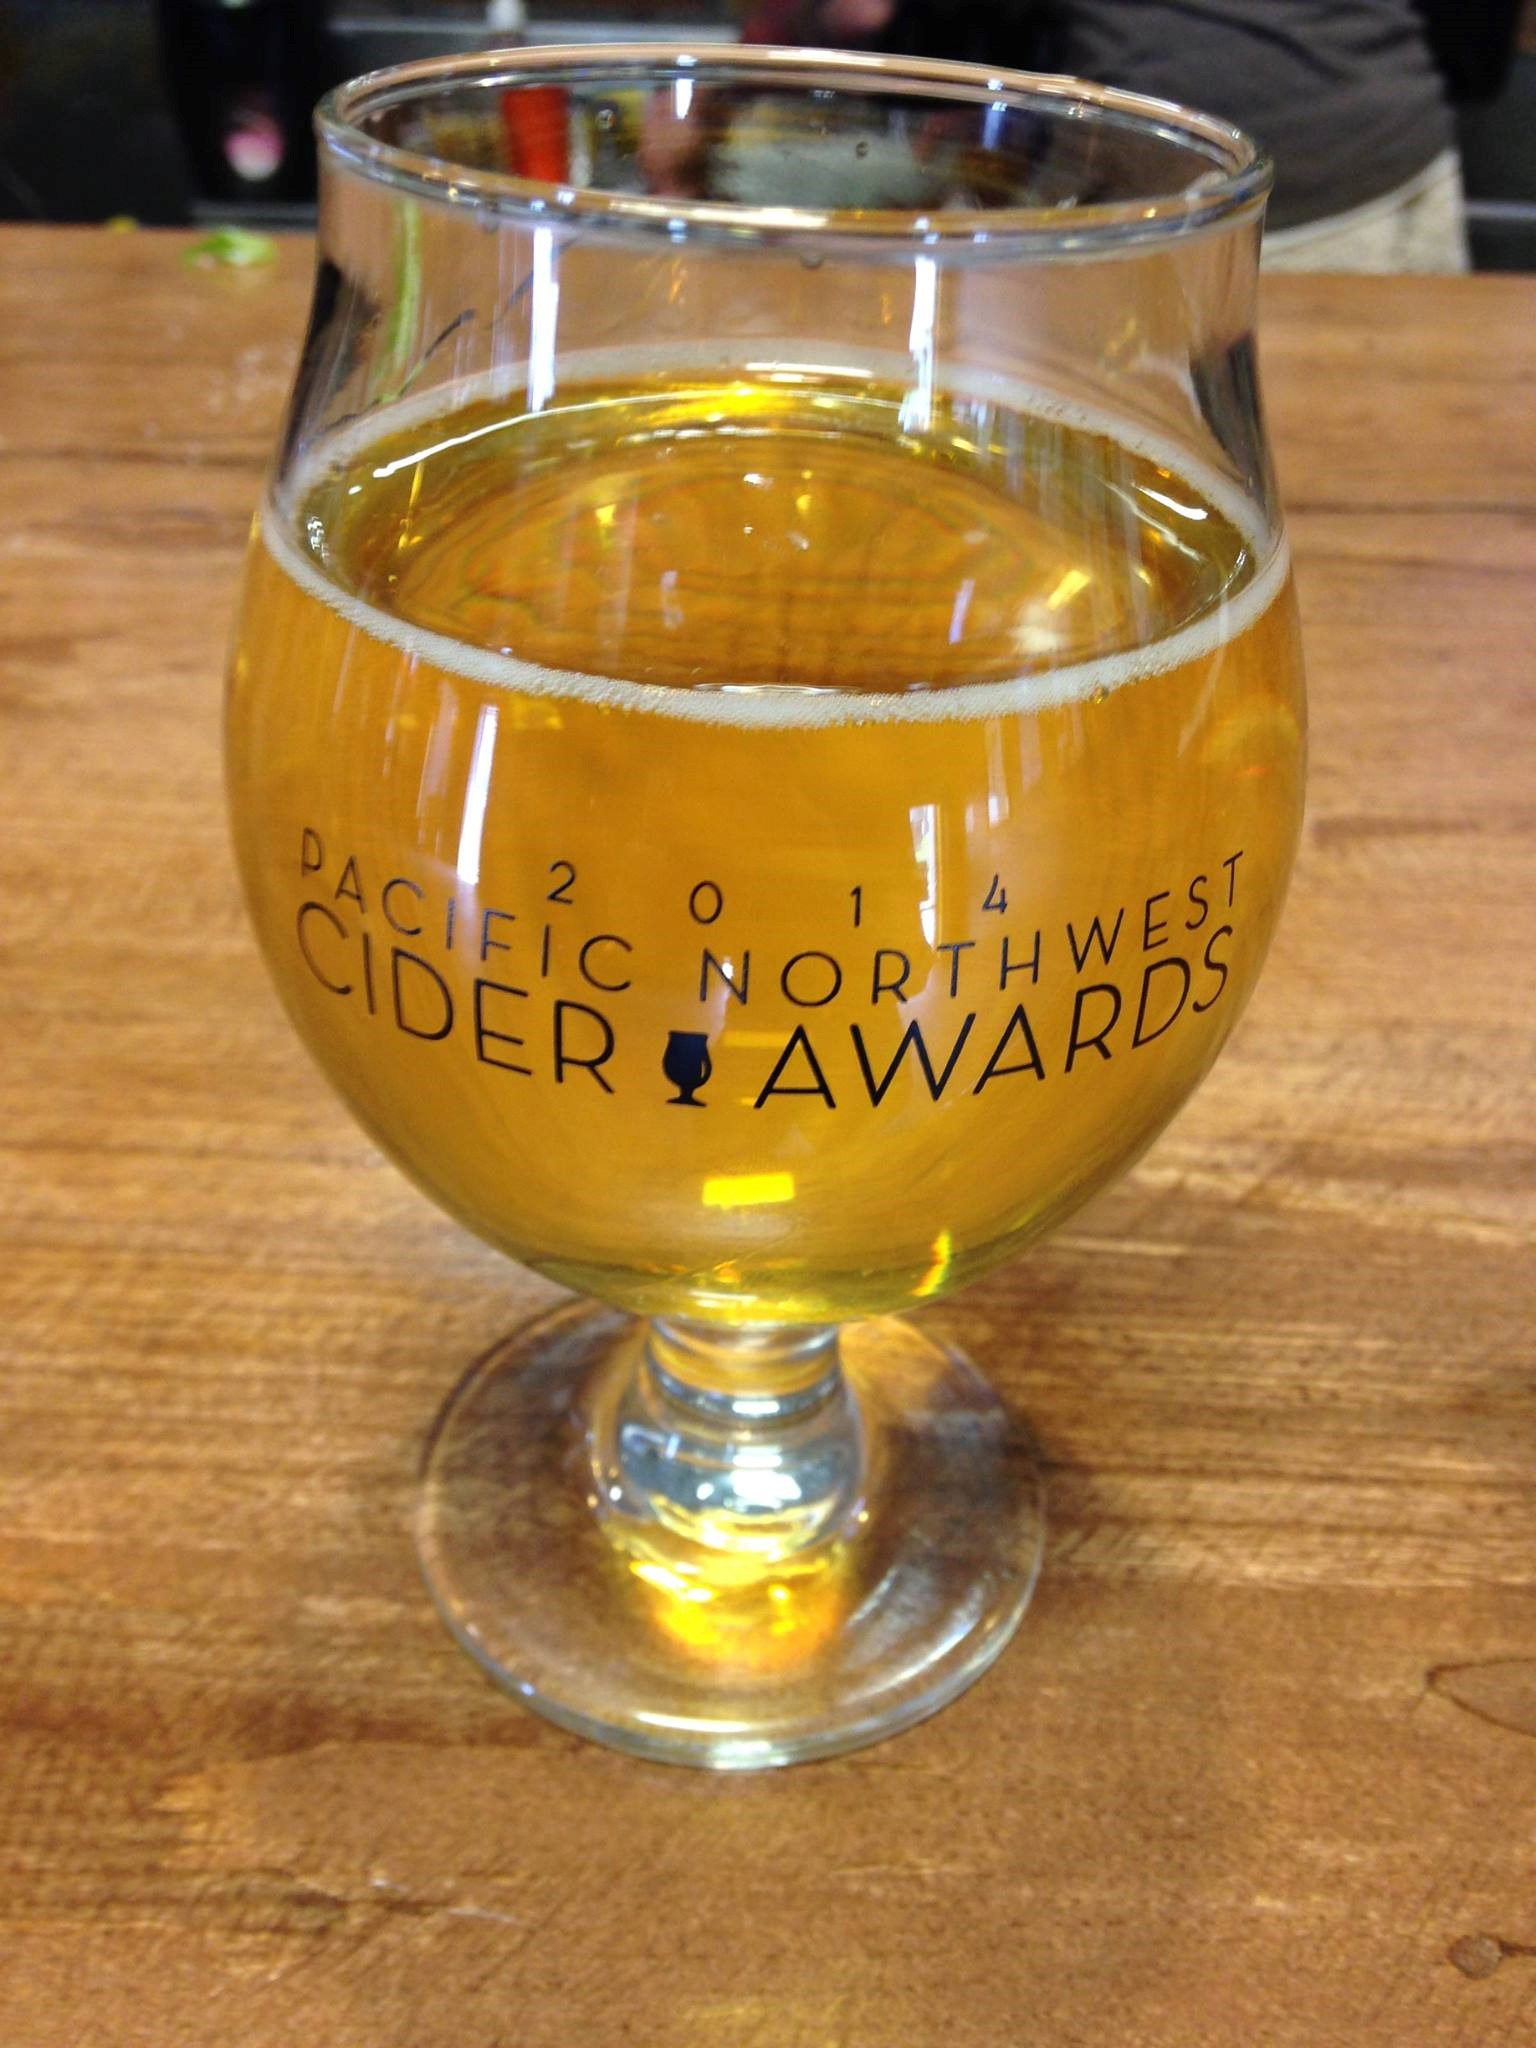 Pacific Northwest Cider Awards PNWCA Images